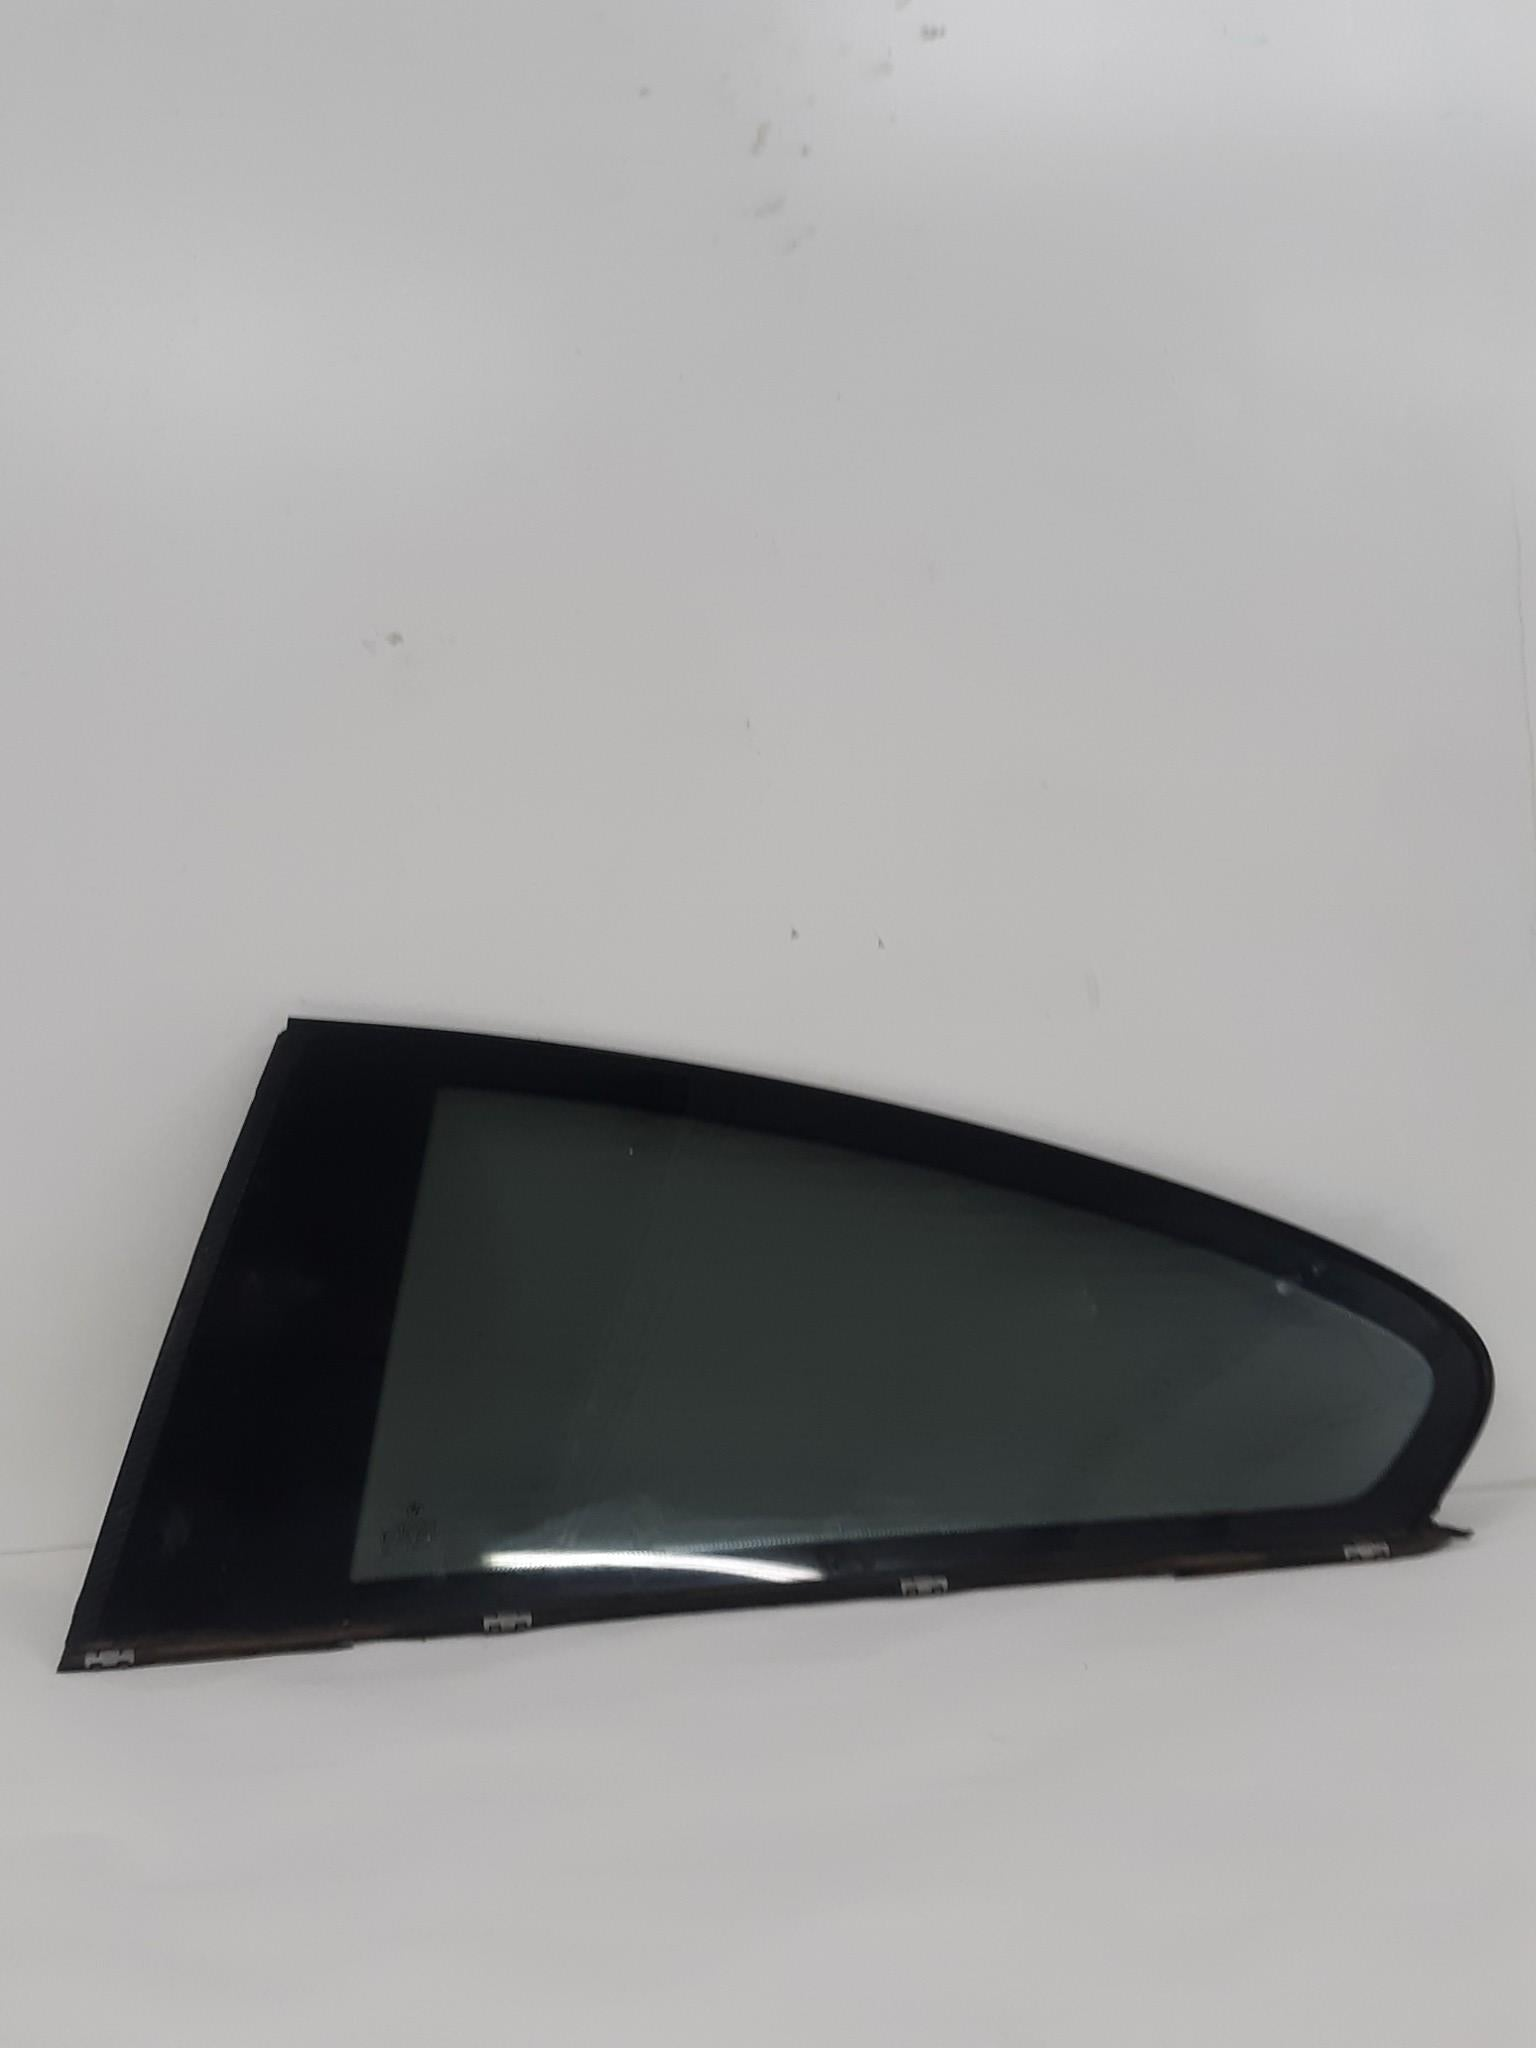 2006 BMW 650i E63 Coupe Rear Left Driver Side Quarter Panel Glass Window OEM